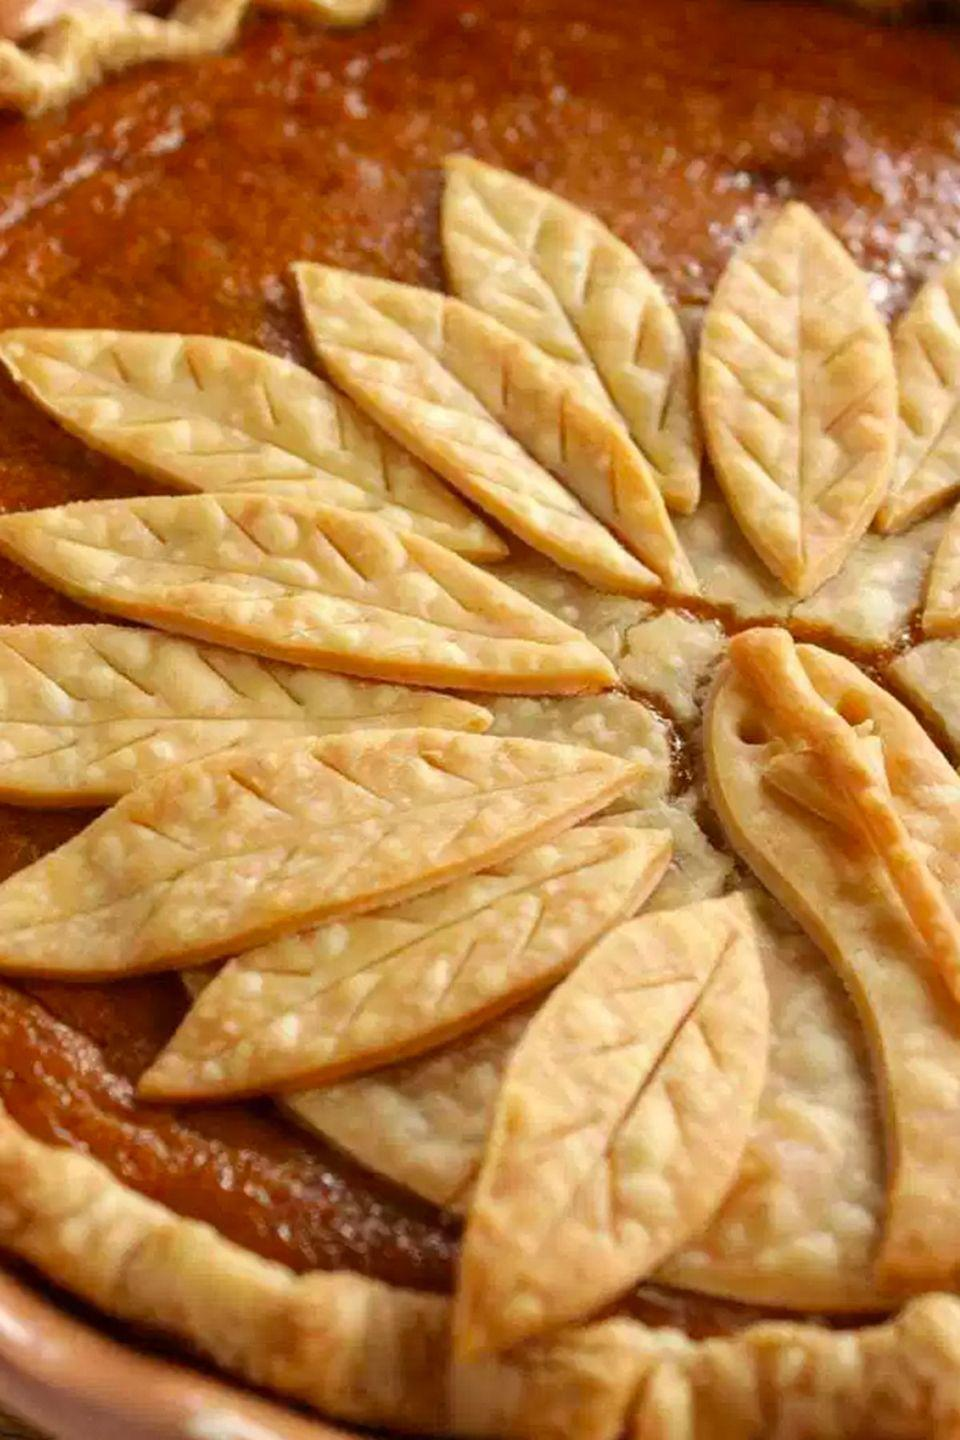 """<p>The best part of this adorable turkey-shaped pie crust decoration: no cookie-cutters needed.</p><p><strong>Get the recipe at <a href=""""http://www.kudoskitchenbyrenee.com/2016/10/adorable-turkey-crust-pumpkin-pie.html"""" rel=""""nofollow noopener"""" target=""""_blank"""" data-ylk=""""slk:Kudos Kitchen by Renee"""" class=""""link rapid-noclick-resp"""">Kudos Kitchen by Renee</a>.</strong> </p>"""